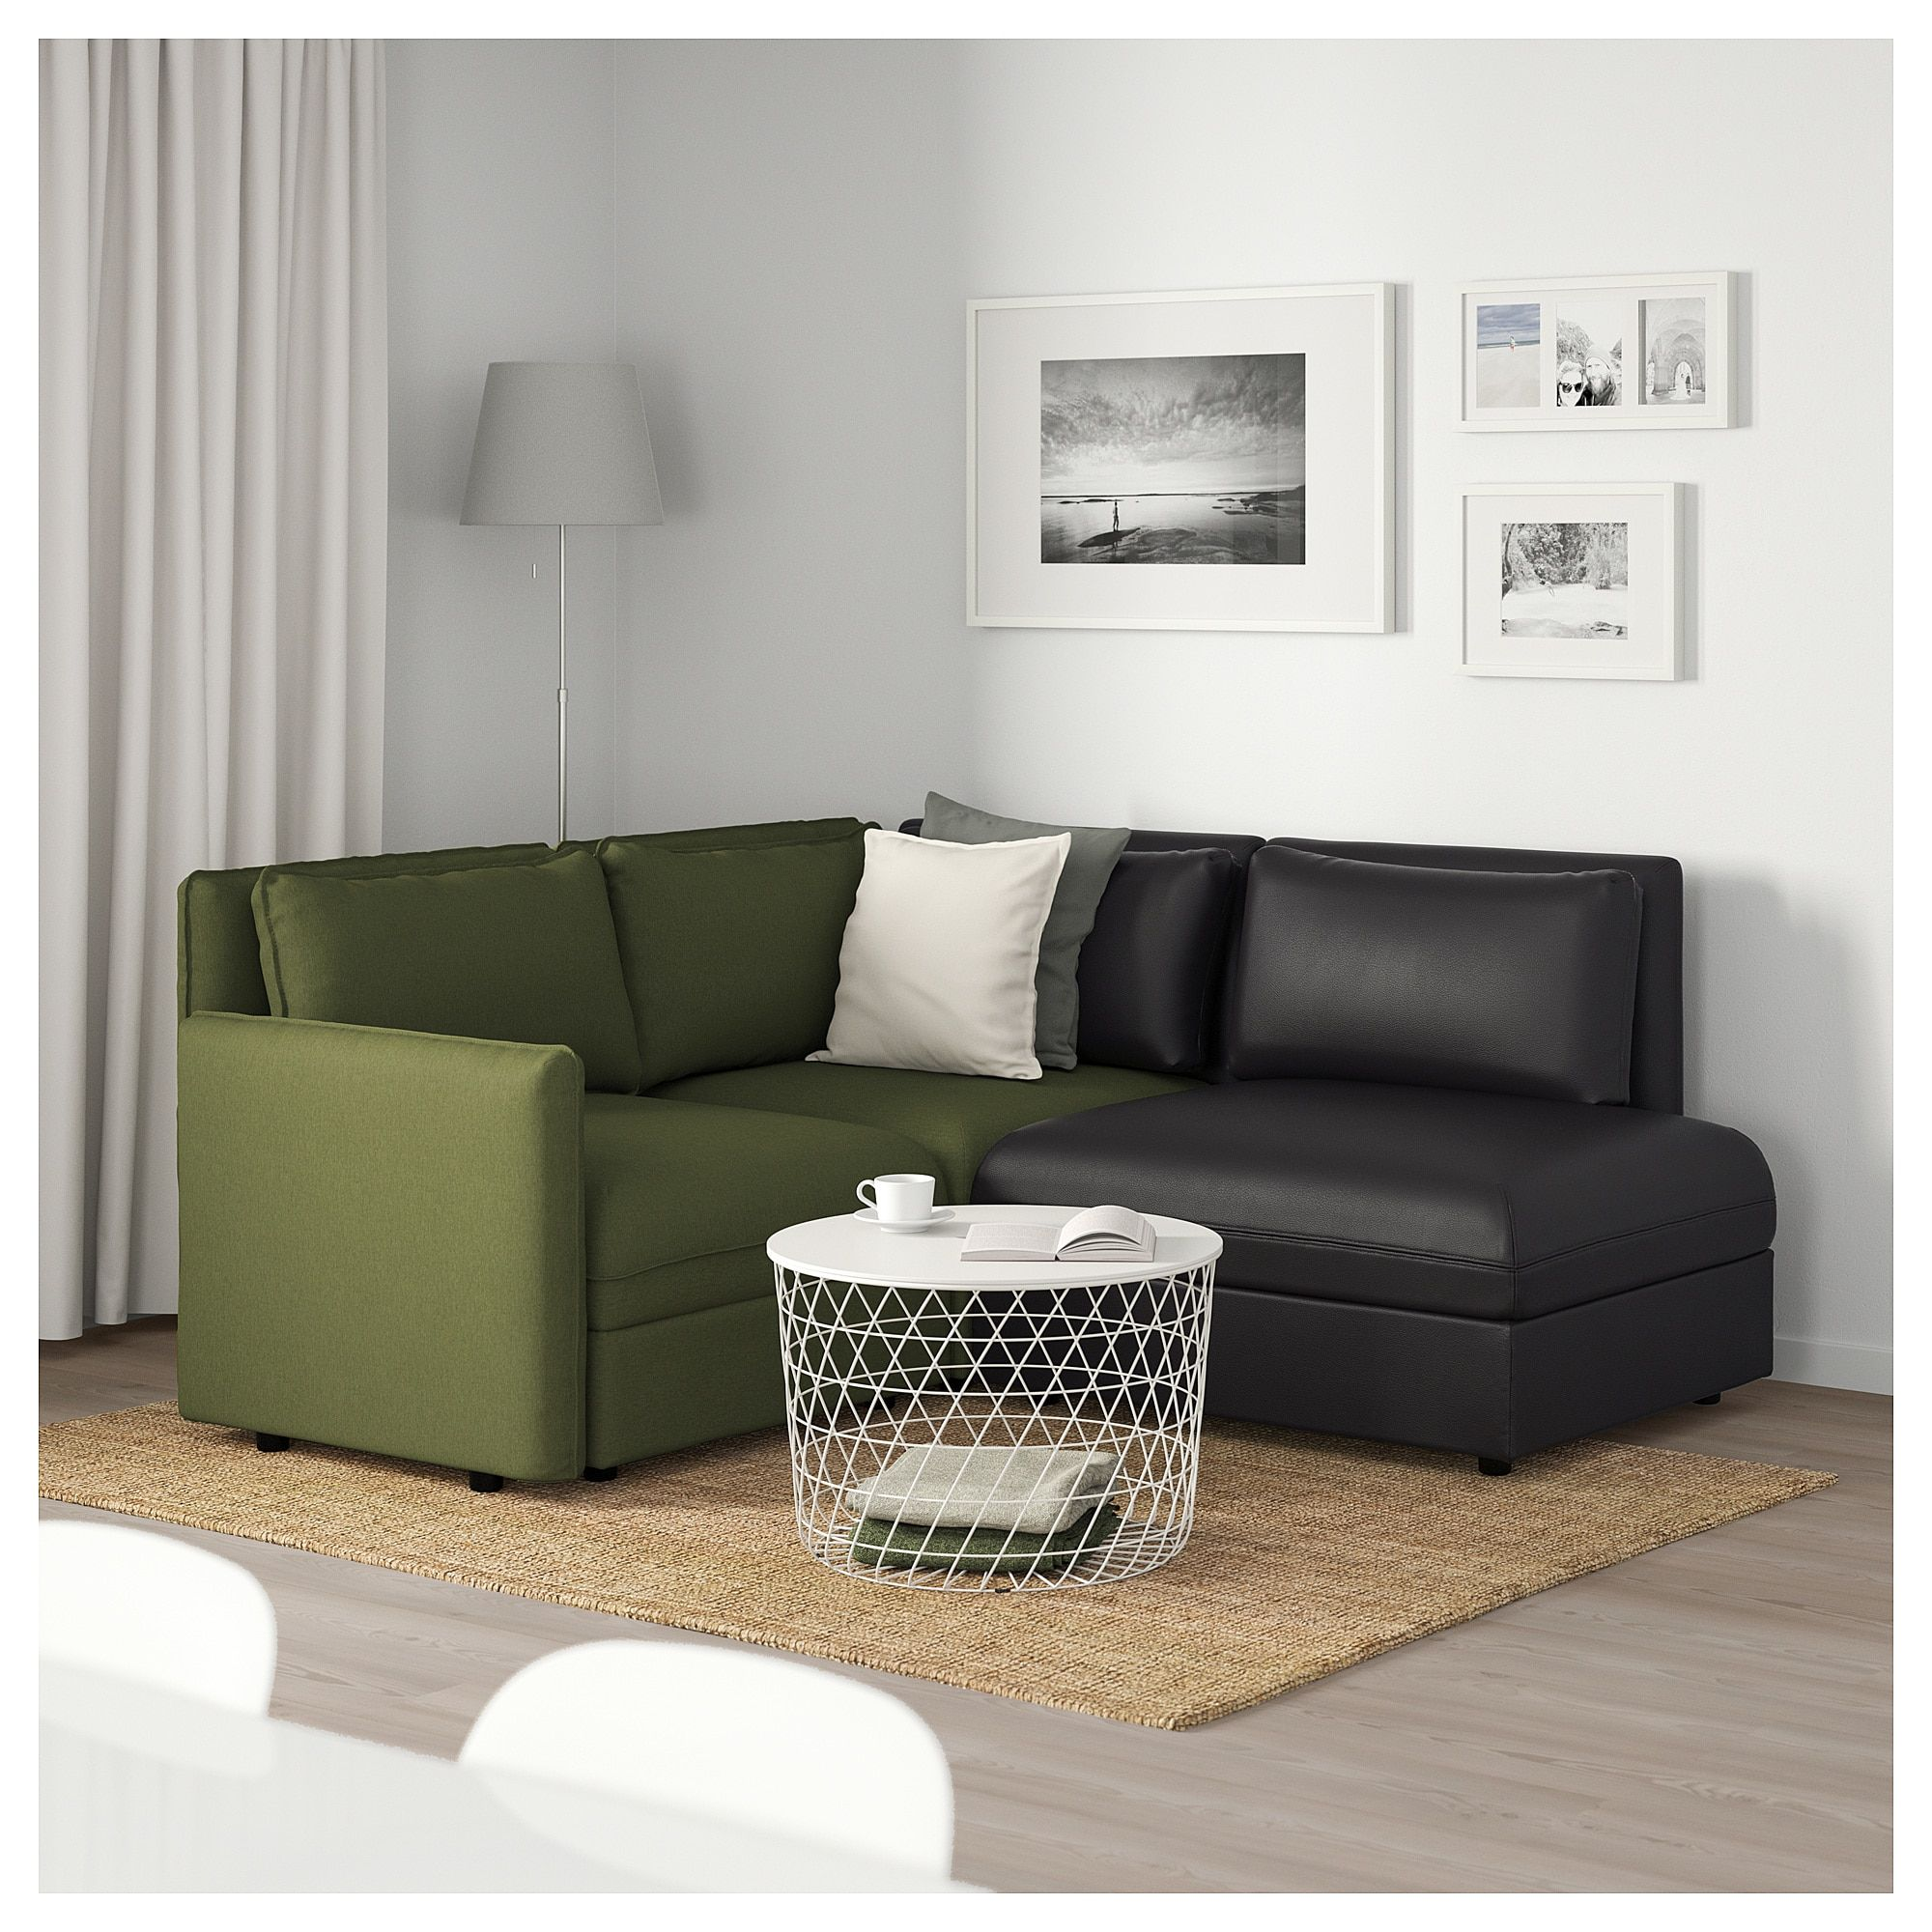 Miraculous Ikea Vallentuna Sectional 3 Seat With Storage Orrsta Unemploymentrelief Wooden Chair Designs For Living Room Unemploymentrelieforg